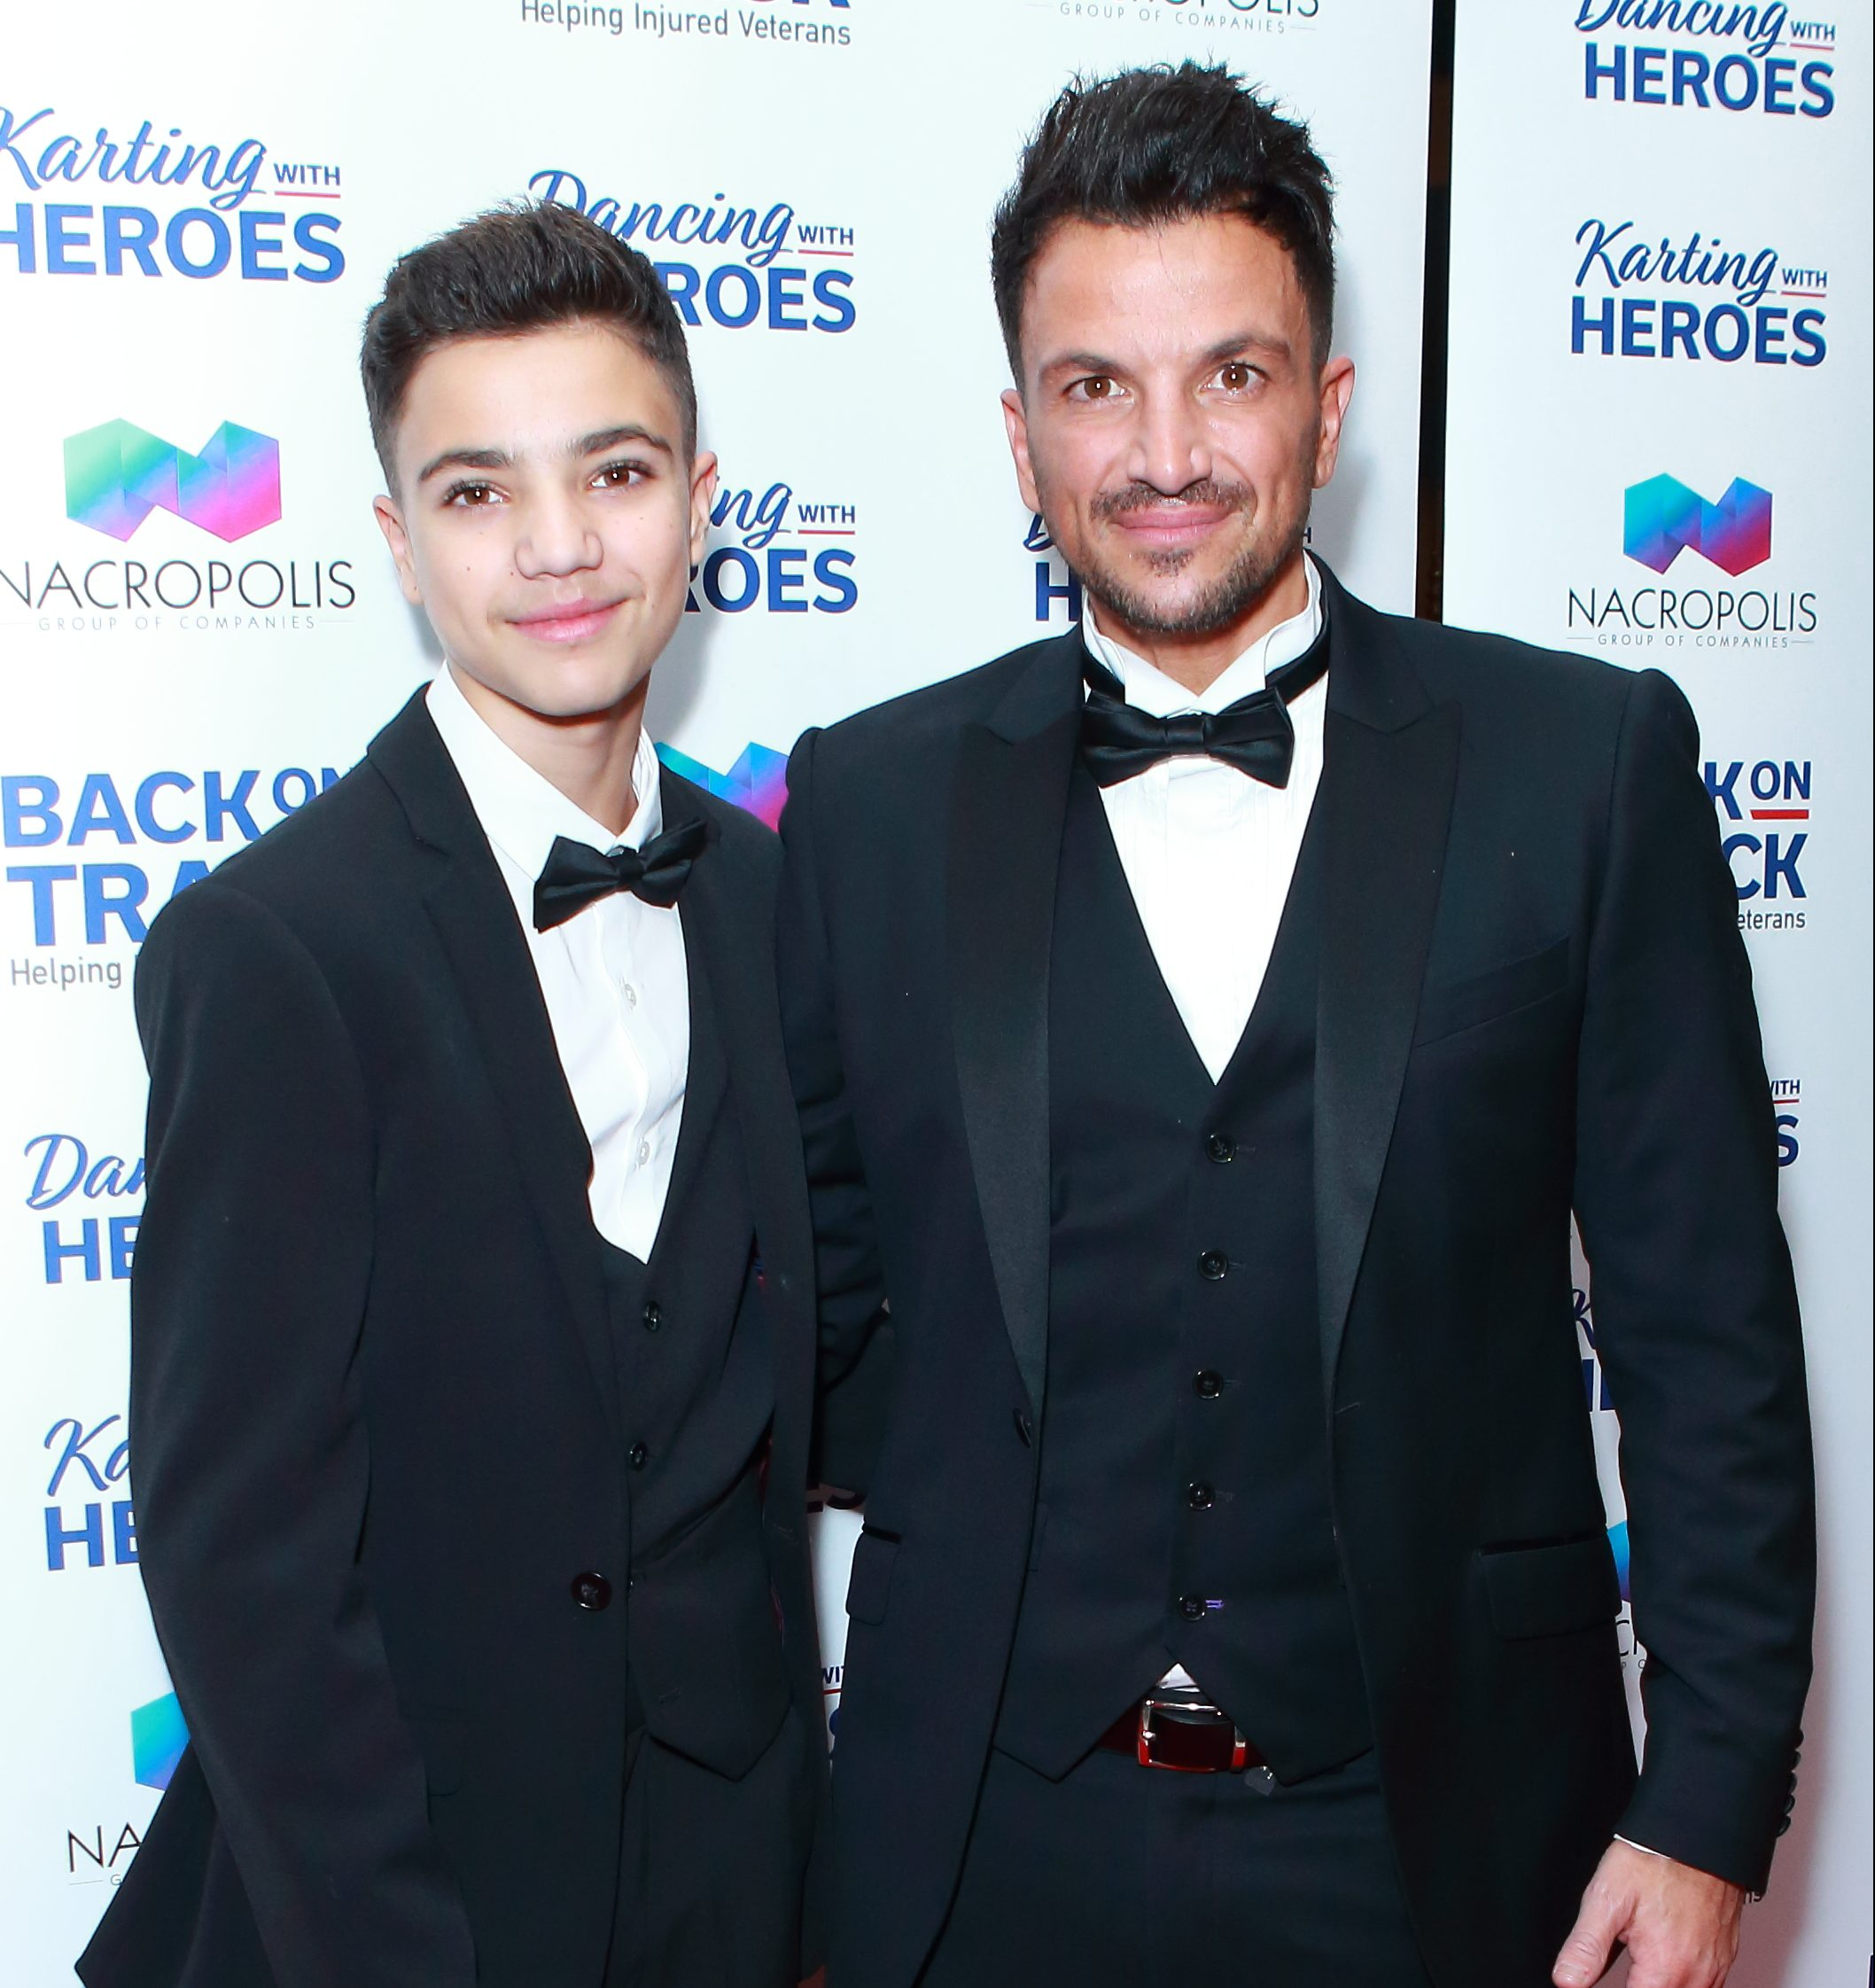 Junior Andre and Peter Andre